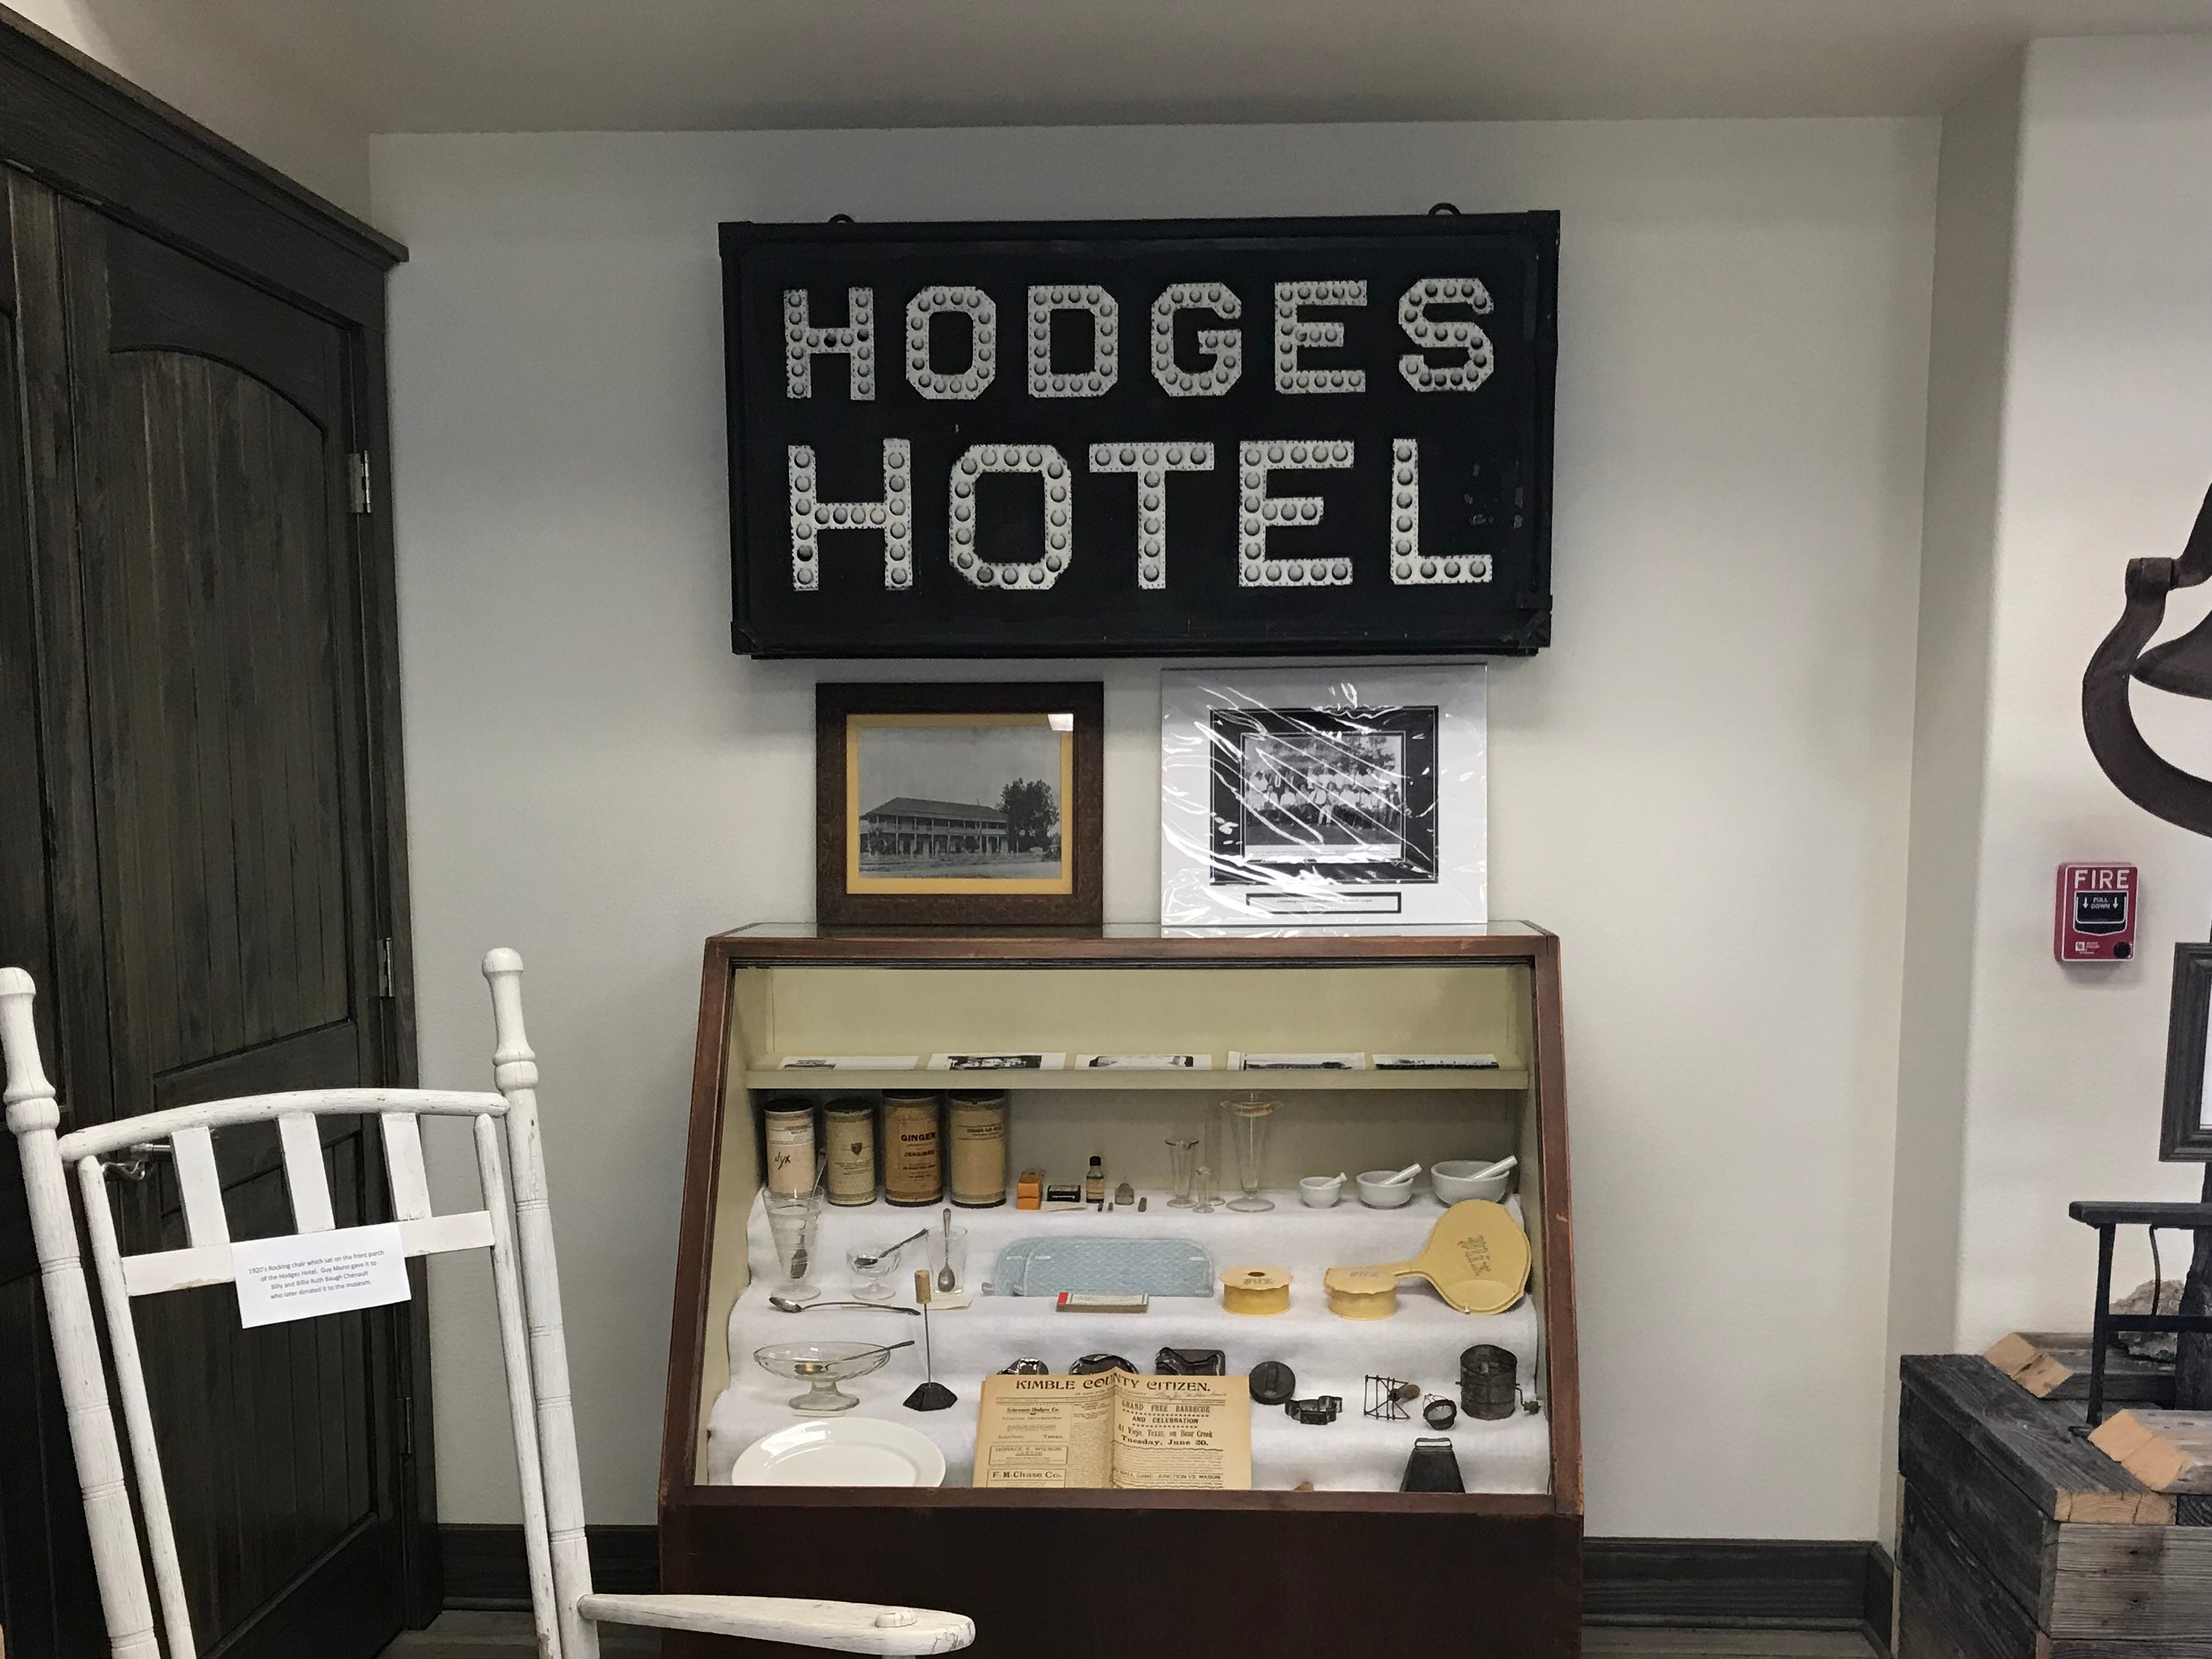 Memorabilia from the Hodges Hotel dates back to the 1880s in the Kimble County Historical Museum in Junction.